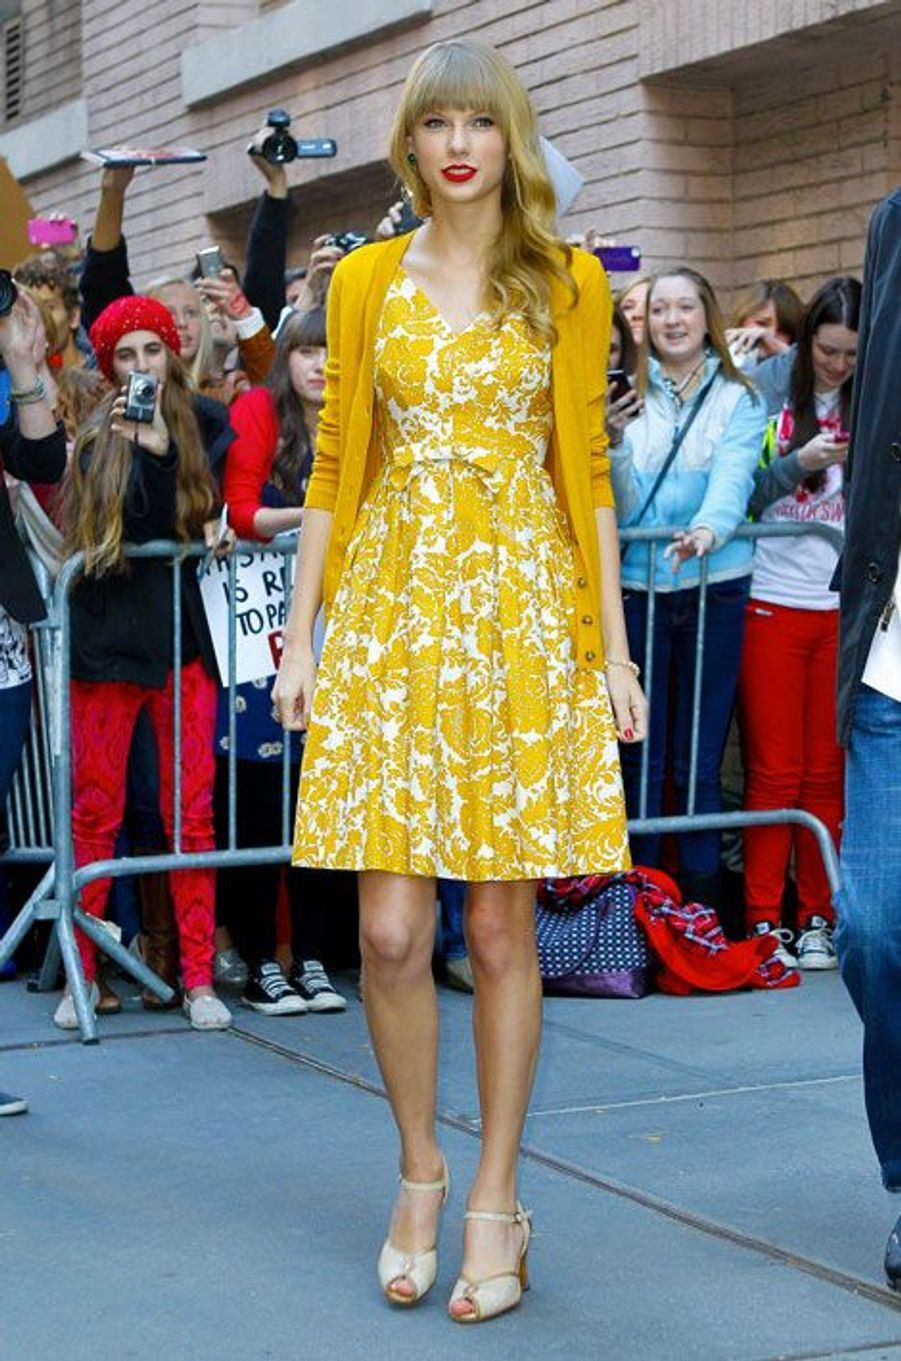 La chanteuse américaine Taylor Swift devant les studios ABC à New York, en 2013